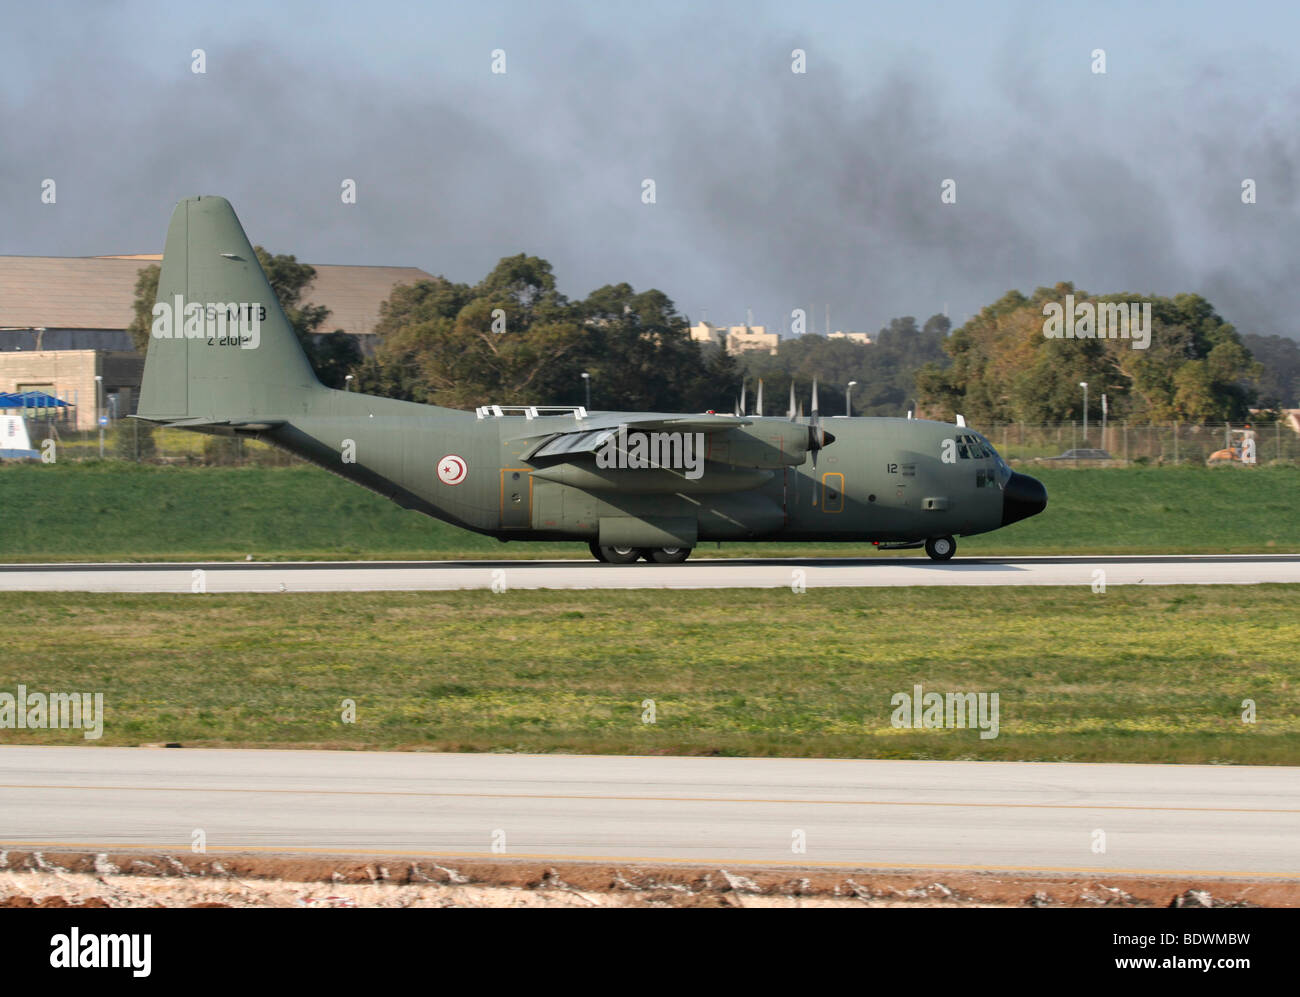 Tunisian Air Force Lockheed C-130 Hercules military cargo plane on the runway just after landing in Malta - Stock Image